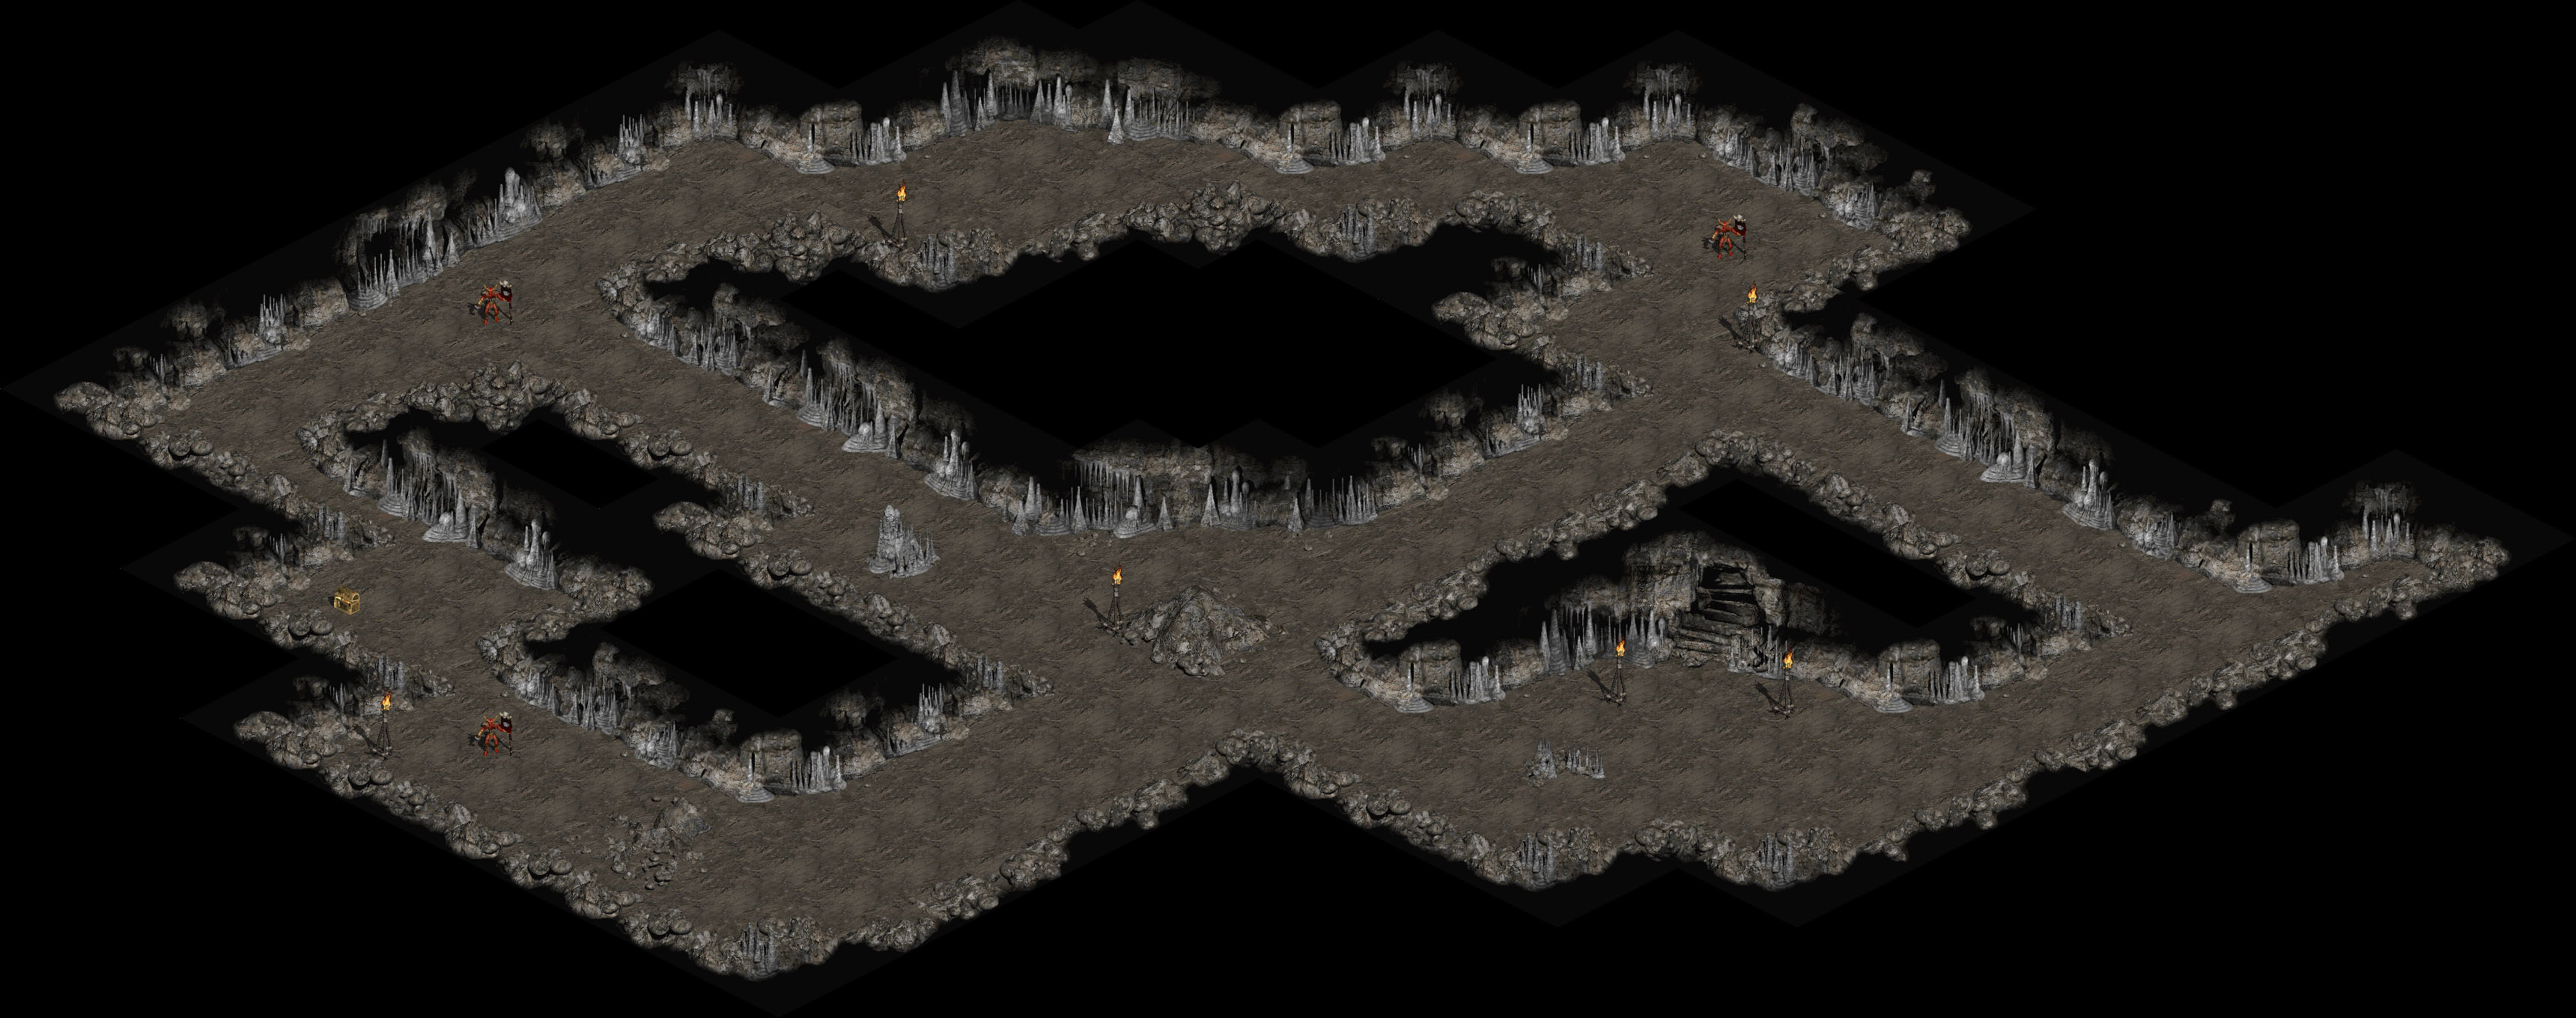 文件:Hole Level 2 (Diablo II).jpg